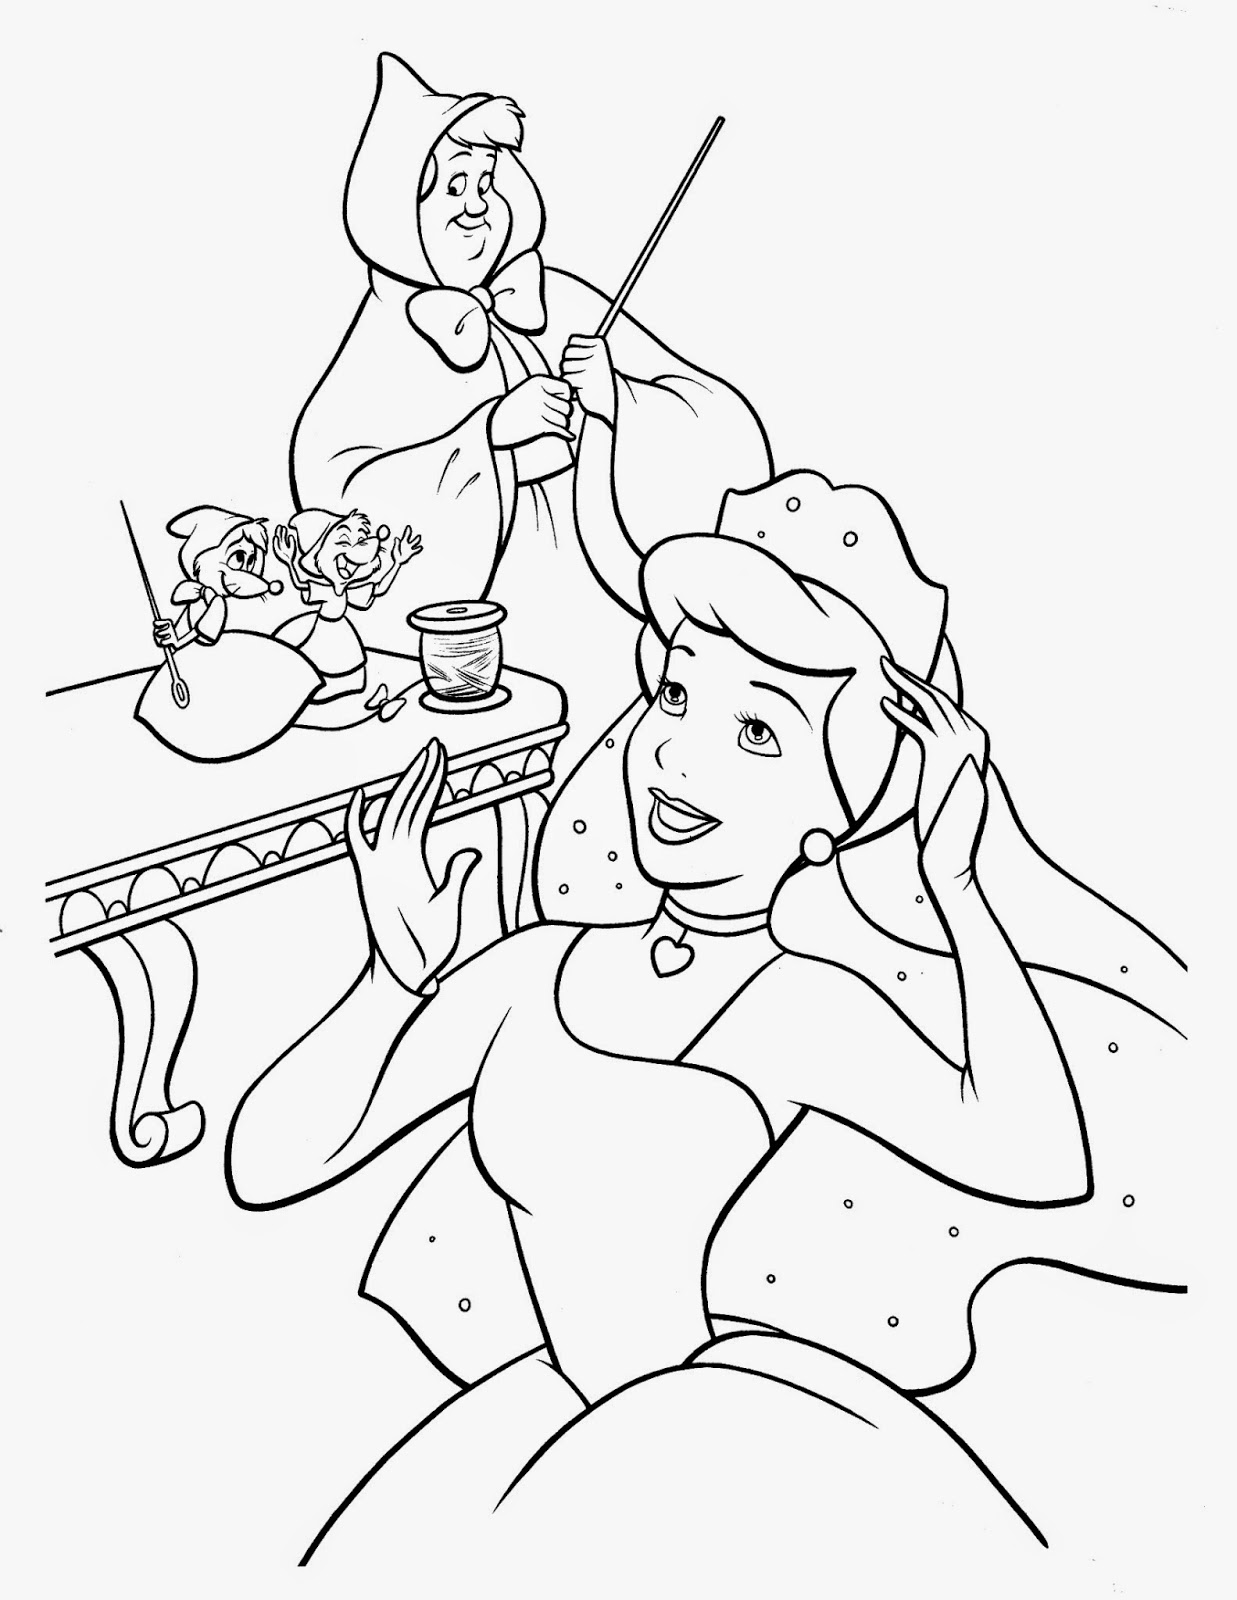 coloring cinderella pictures princess cinderella coloring pages ideas pictures coloring cinderella